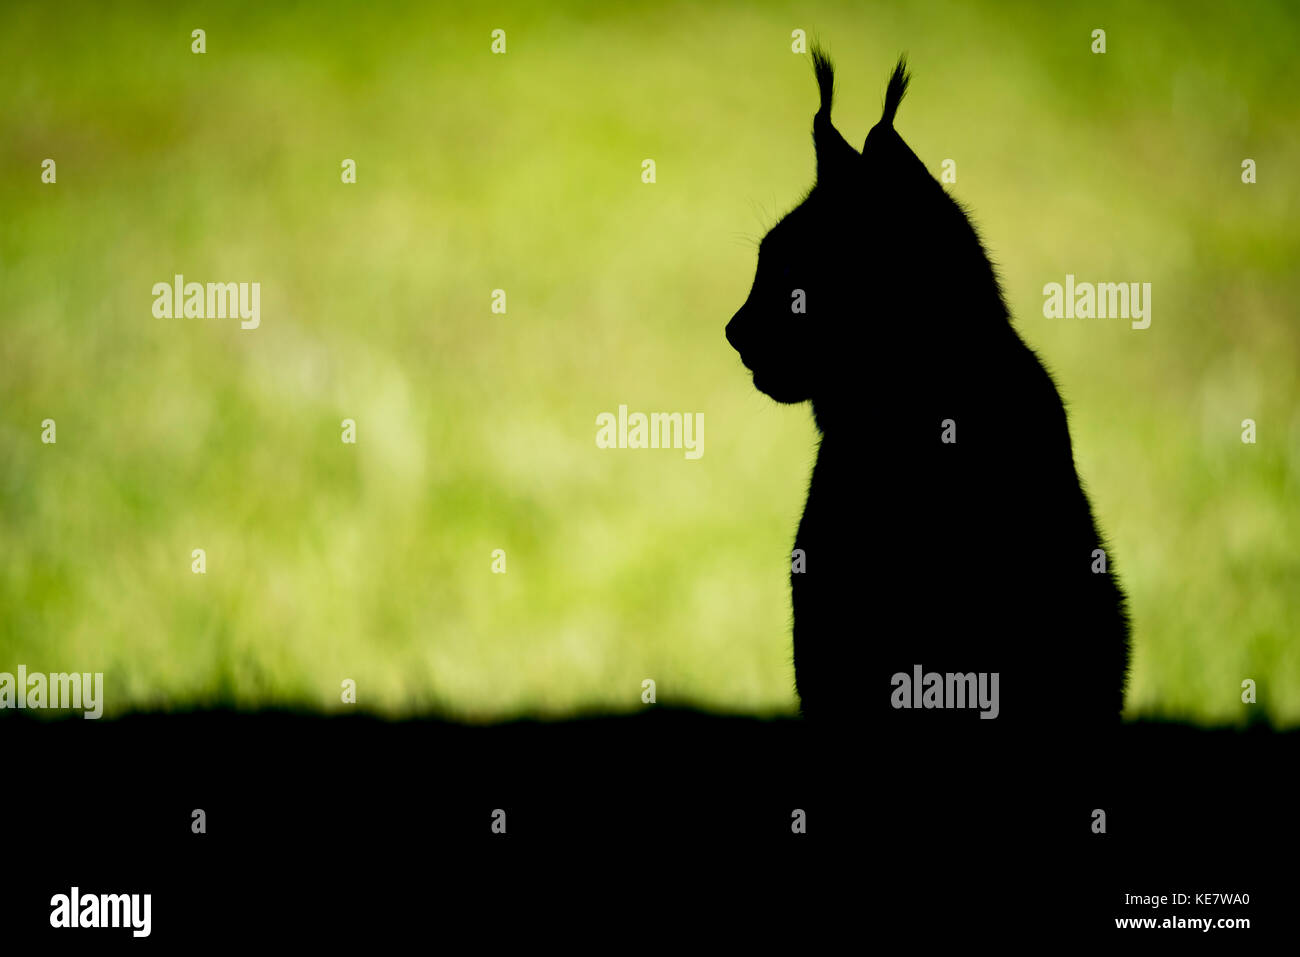 silhouette of canada lynx lynx canadensis sitting on grass looking